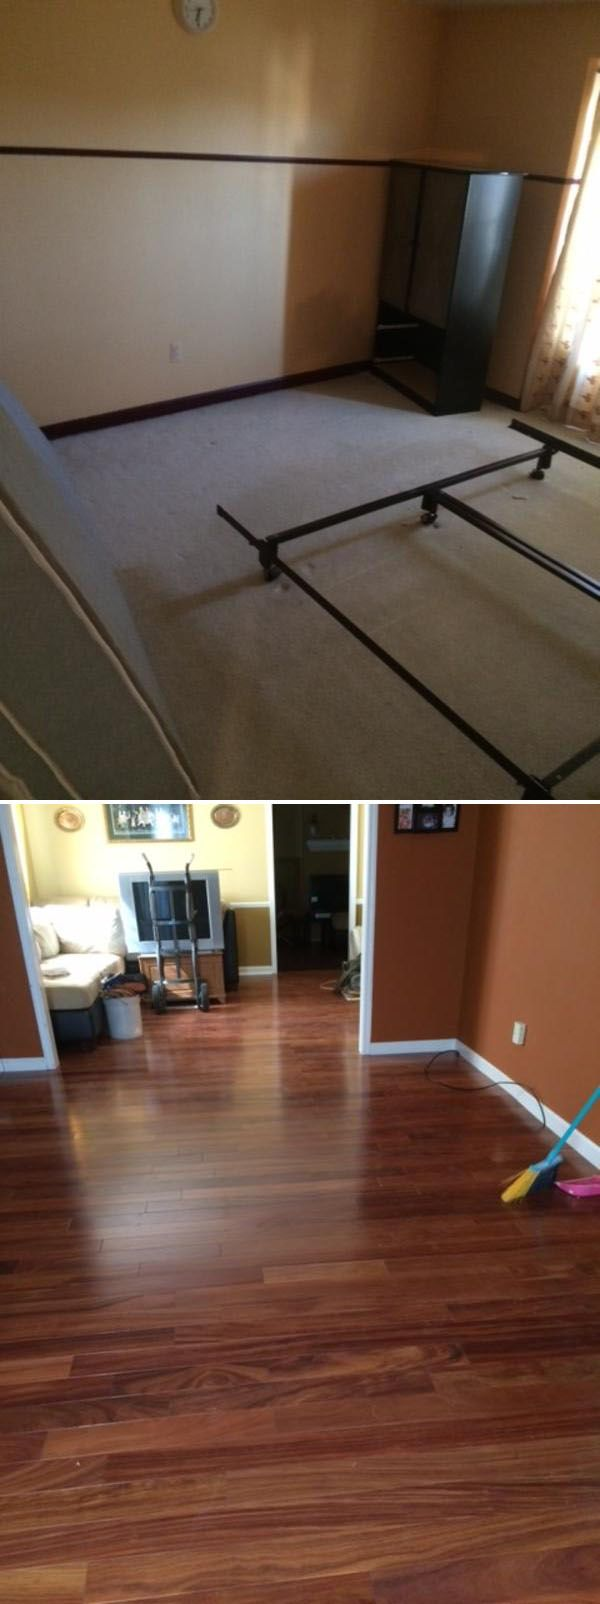 Changed Carpet To Hardwood Flooring Living Room Dining Family